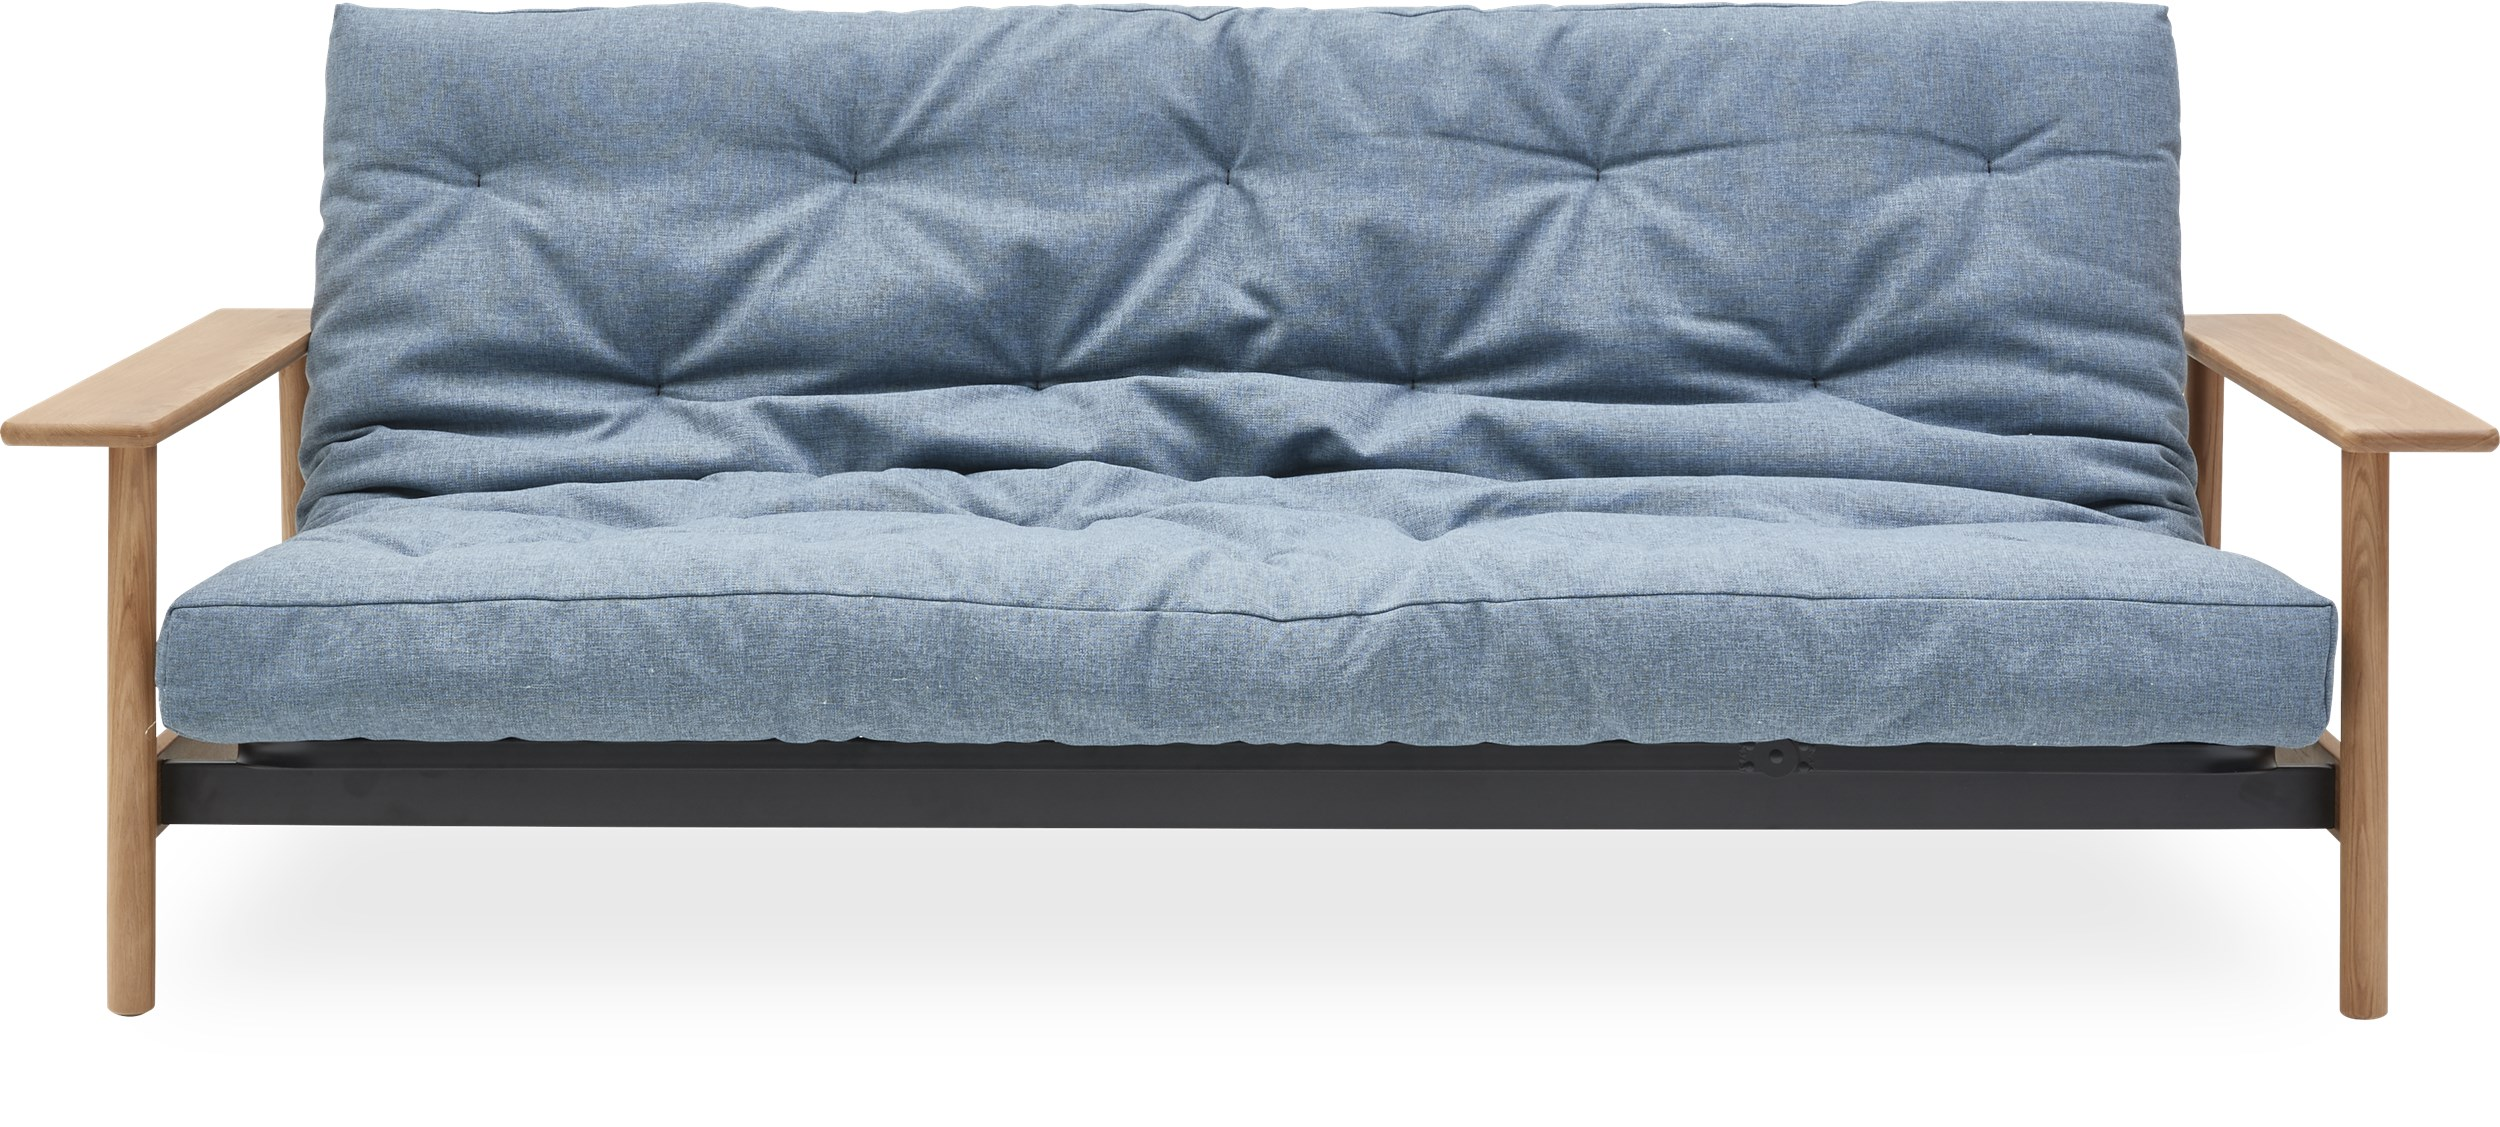 Innovation Living - Balder Spring Round Sovesofa